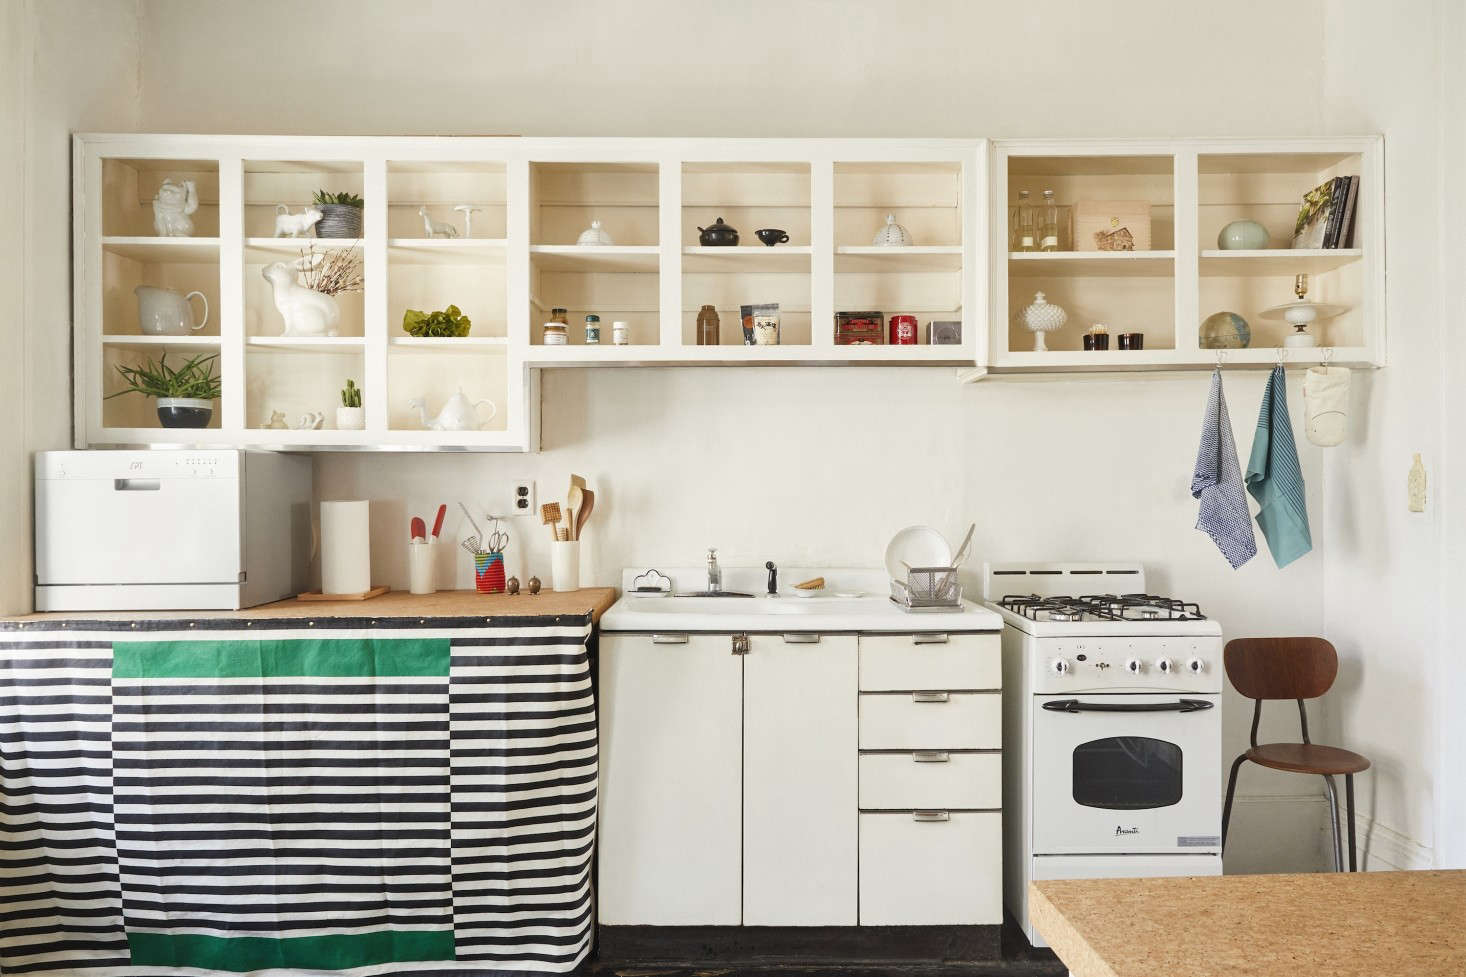 Expert Advice: 10 Genius, Reversible, Budget-Friendly Hacks to